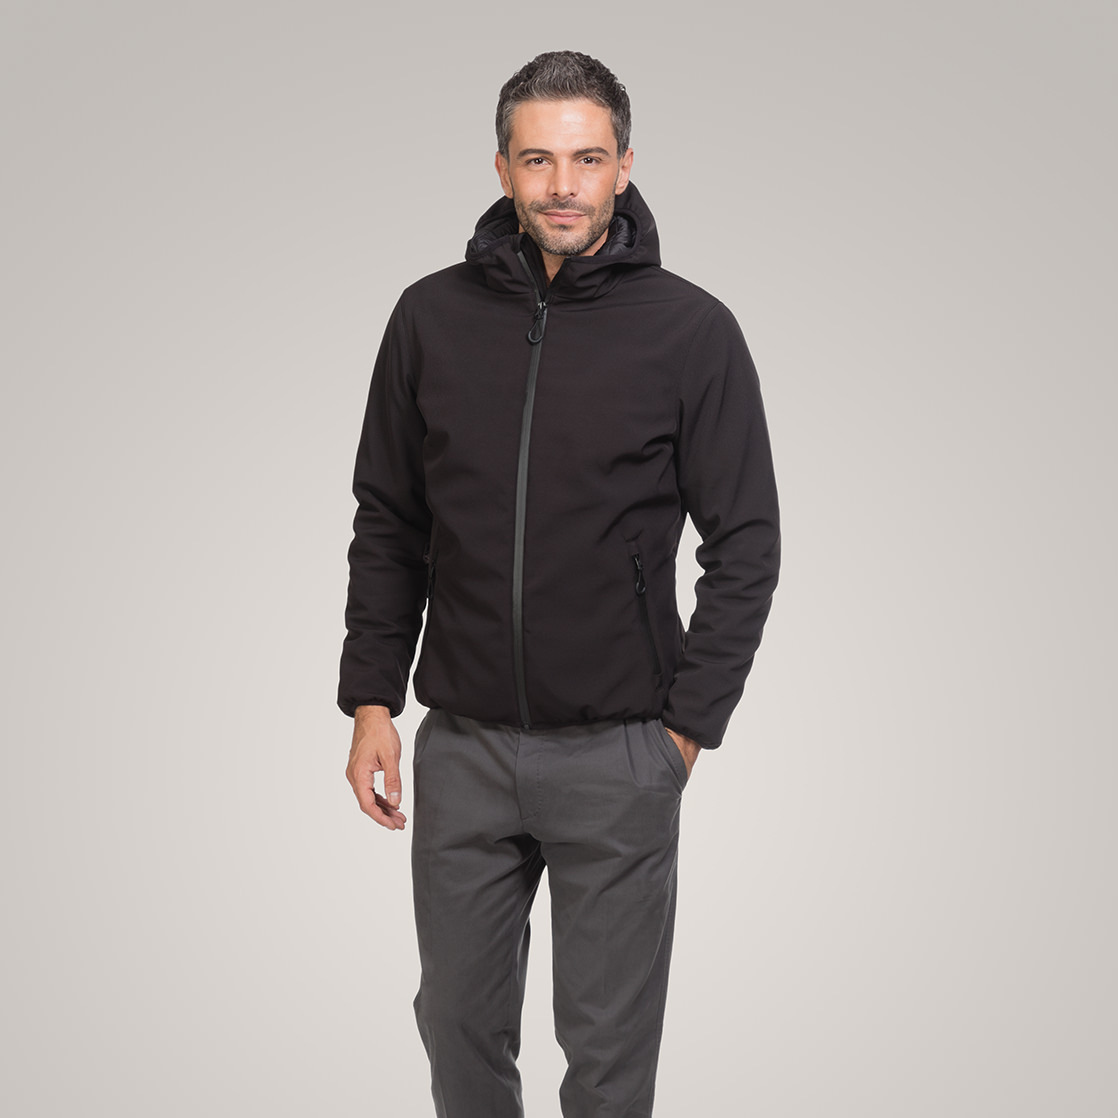 Padded Jacket in soft shell fabric